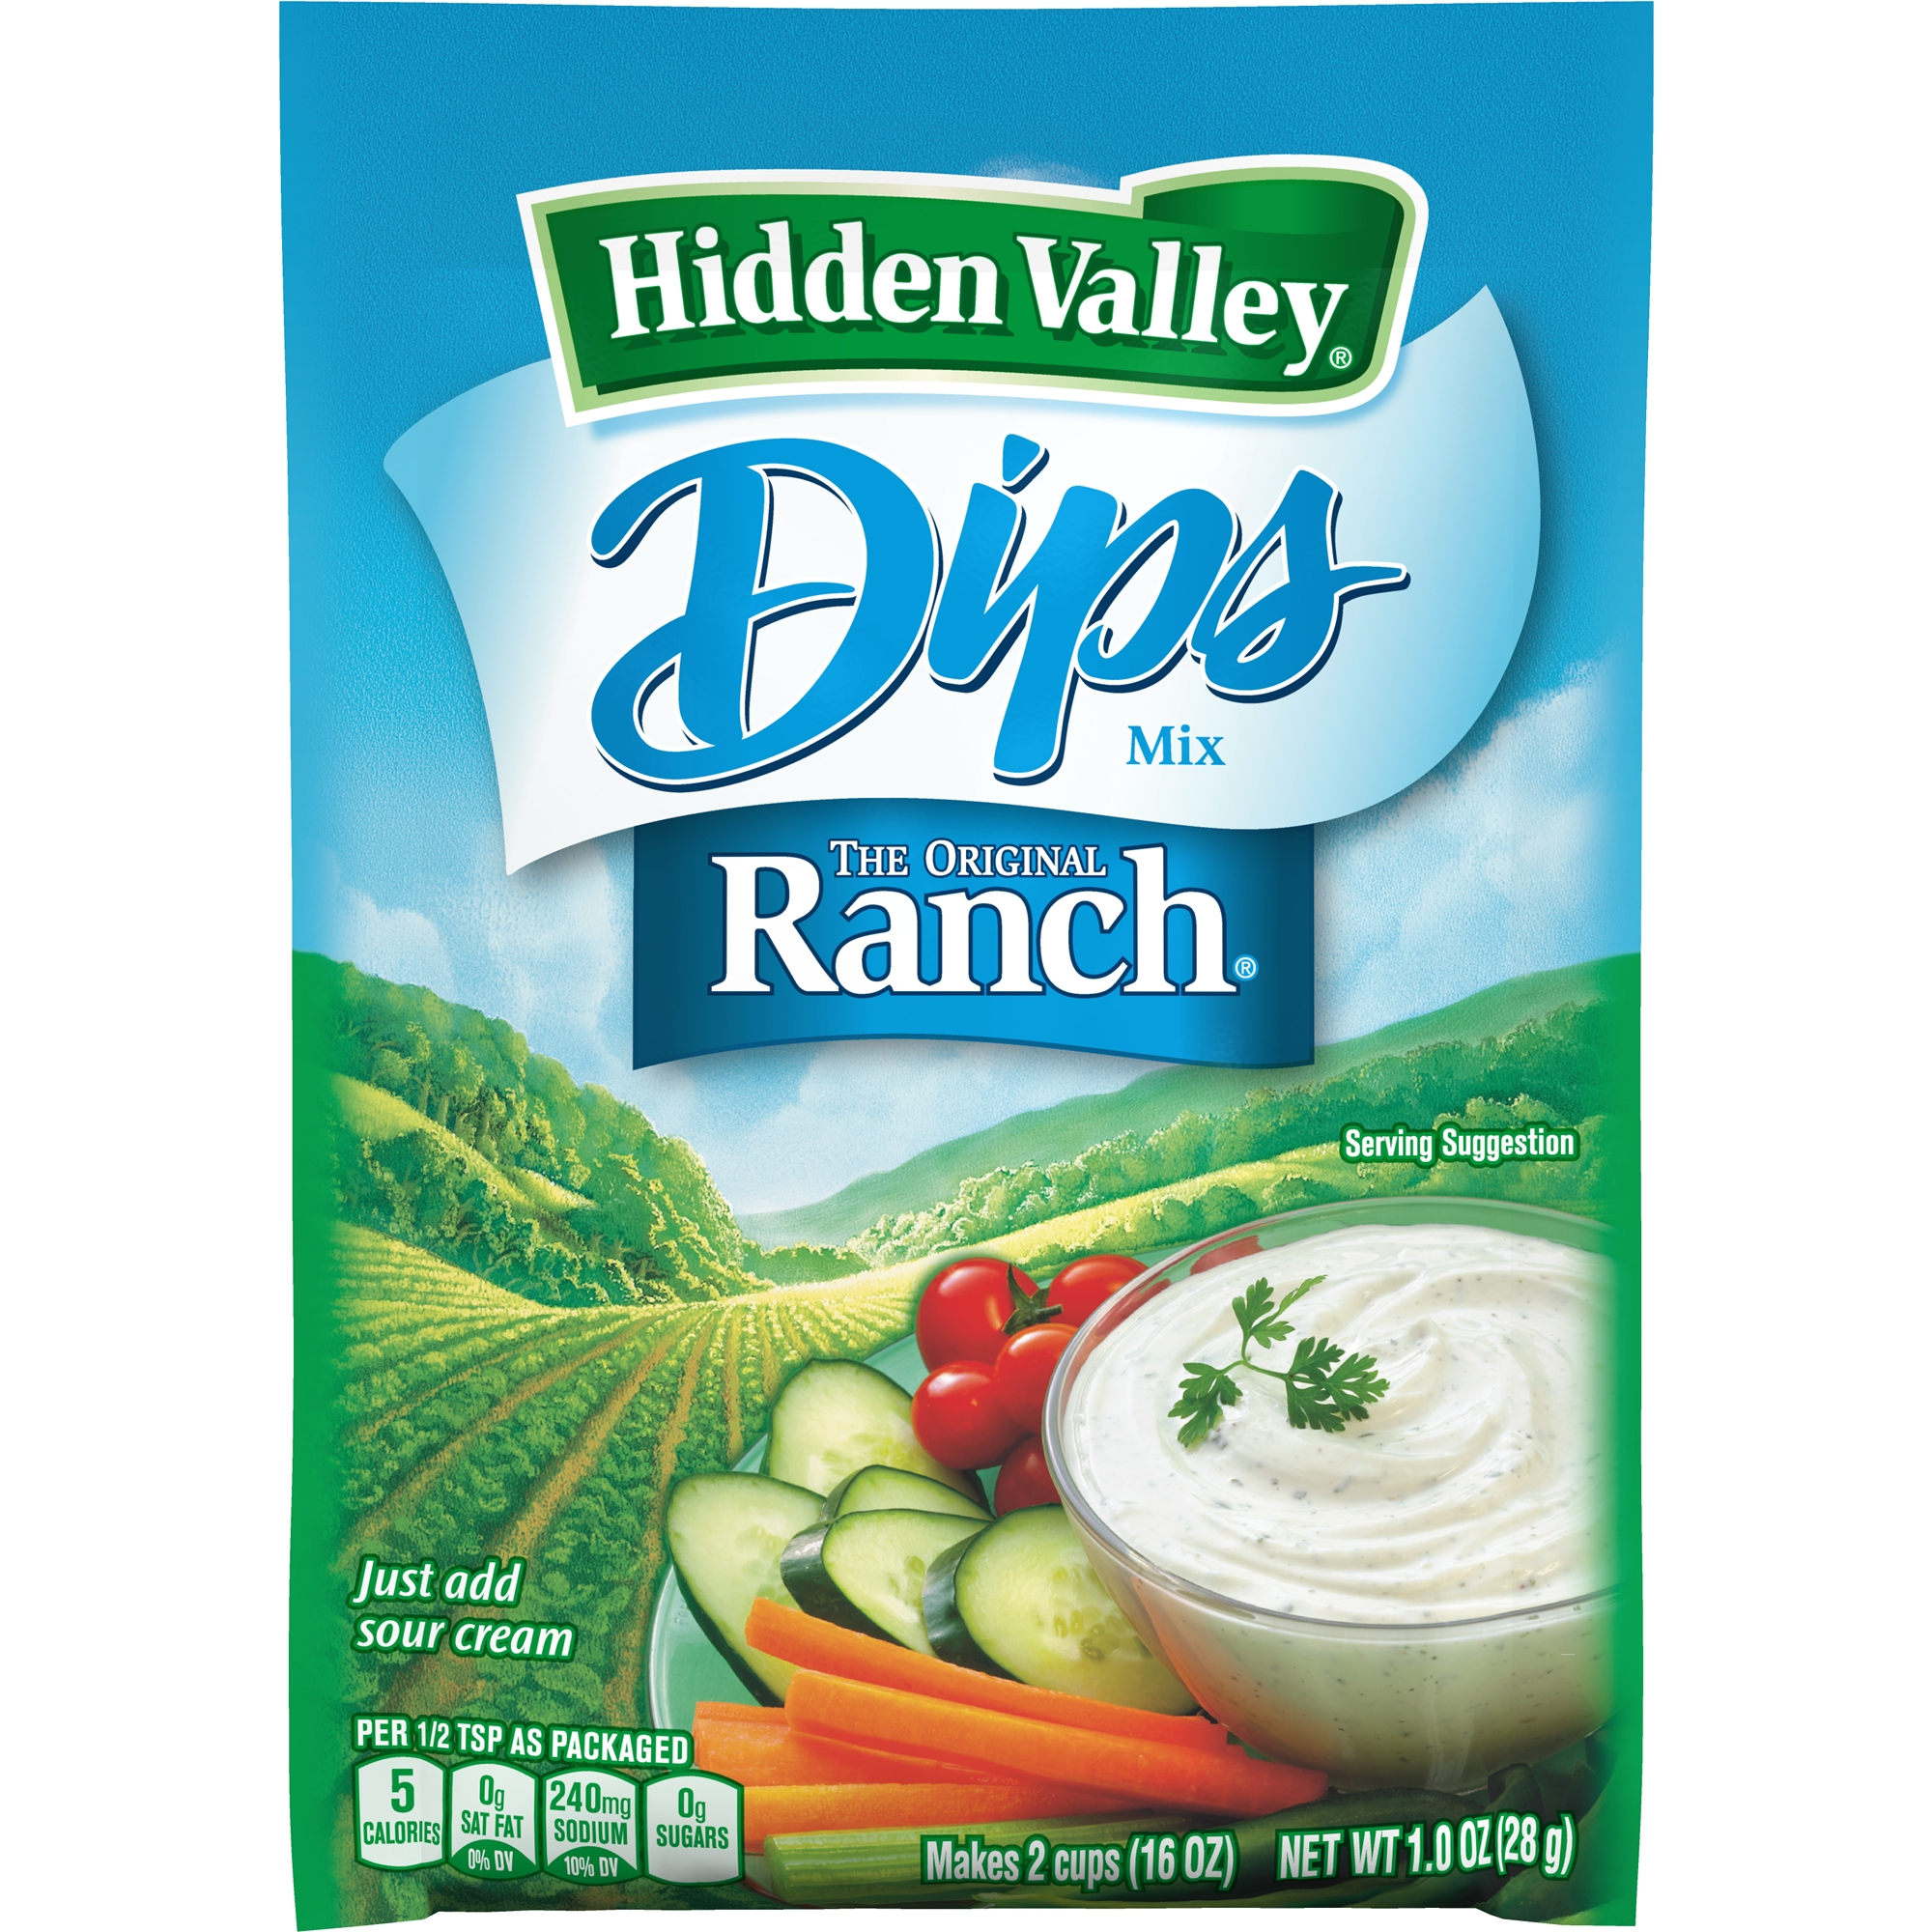 Hidden Valley Original Ranch Dips Mix, Gluten Free - 1 Packet